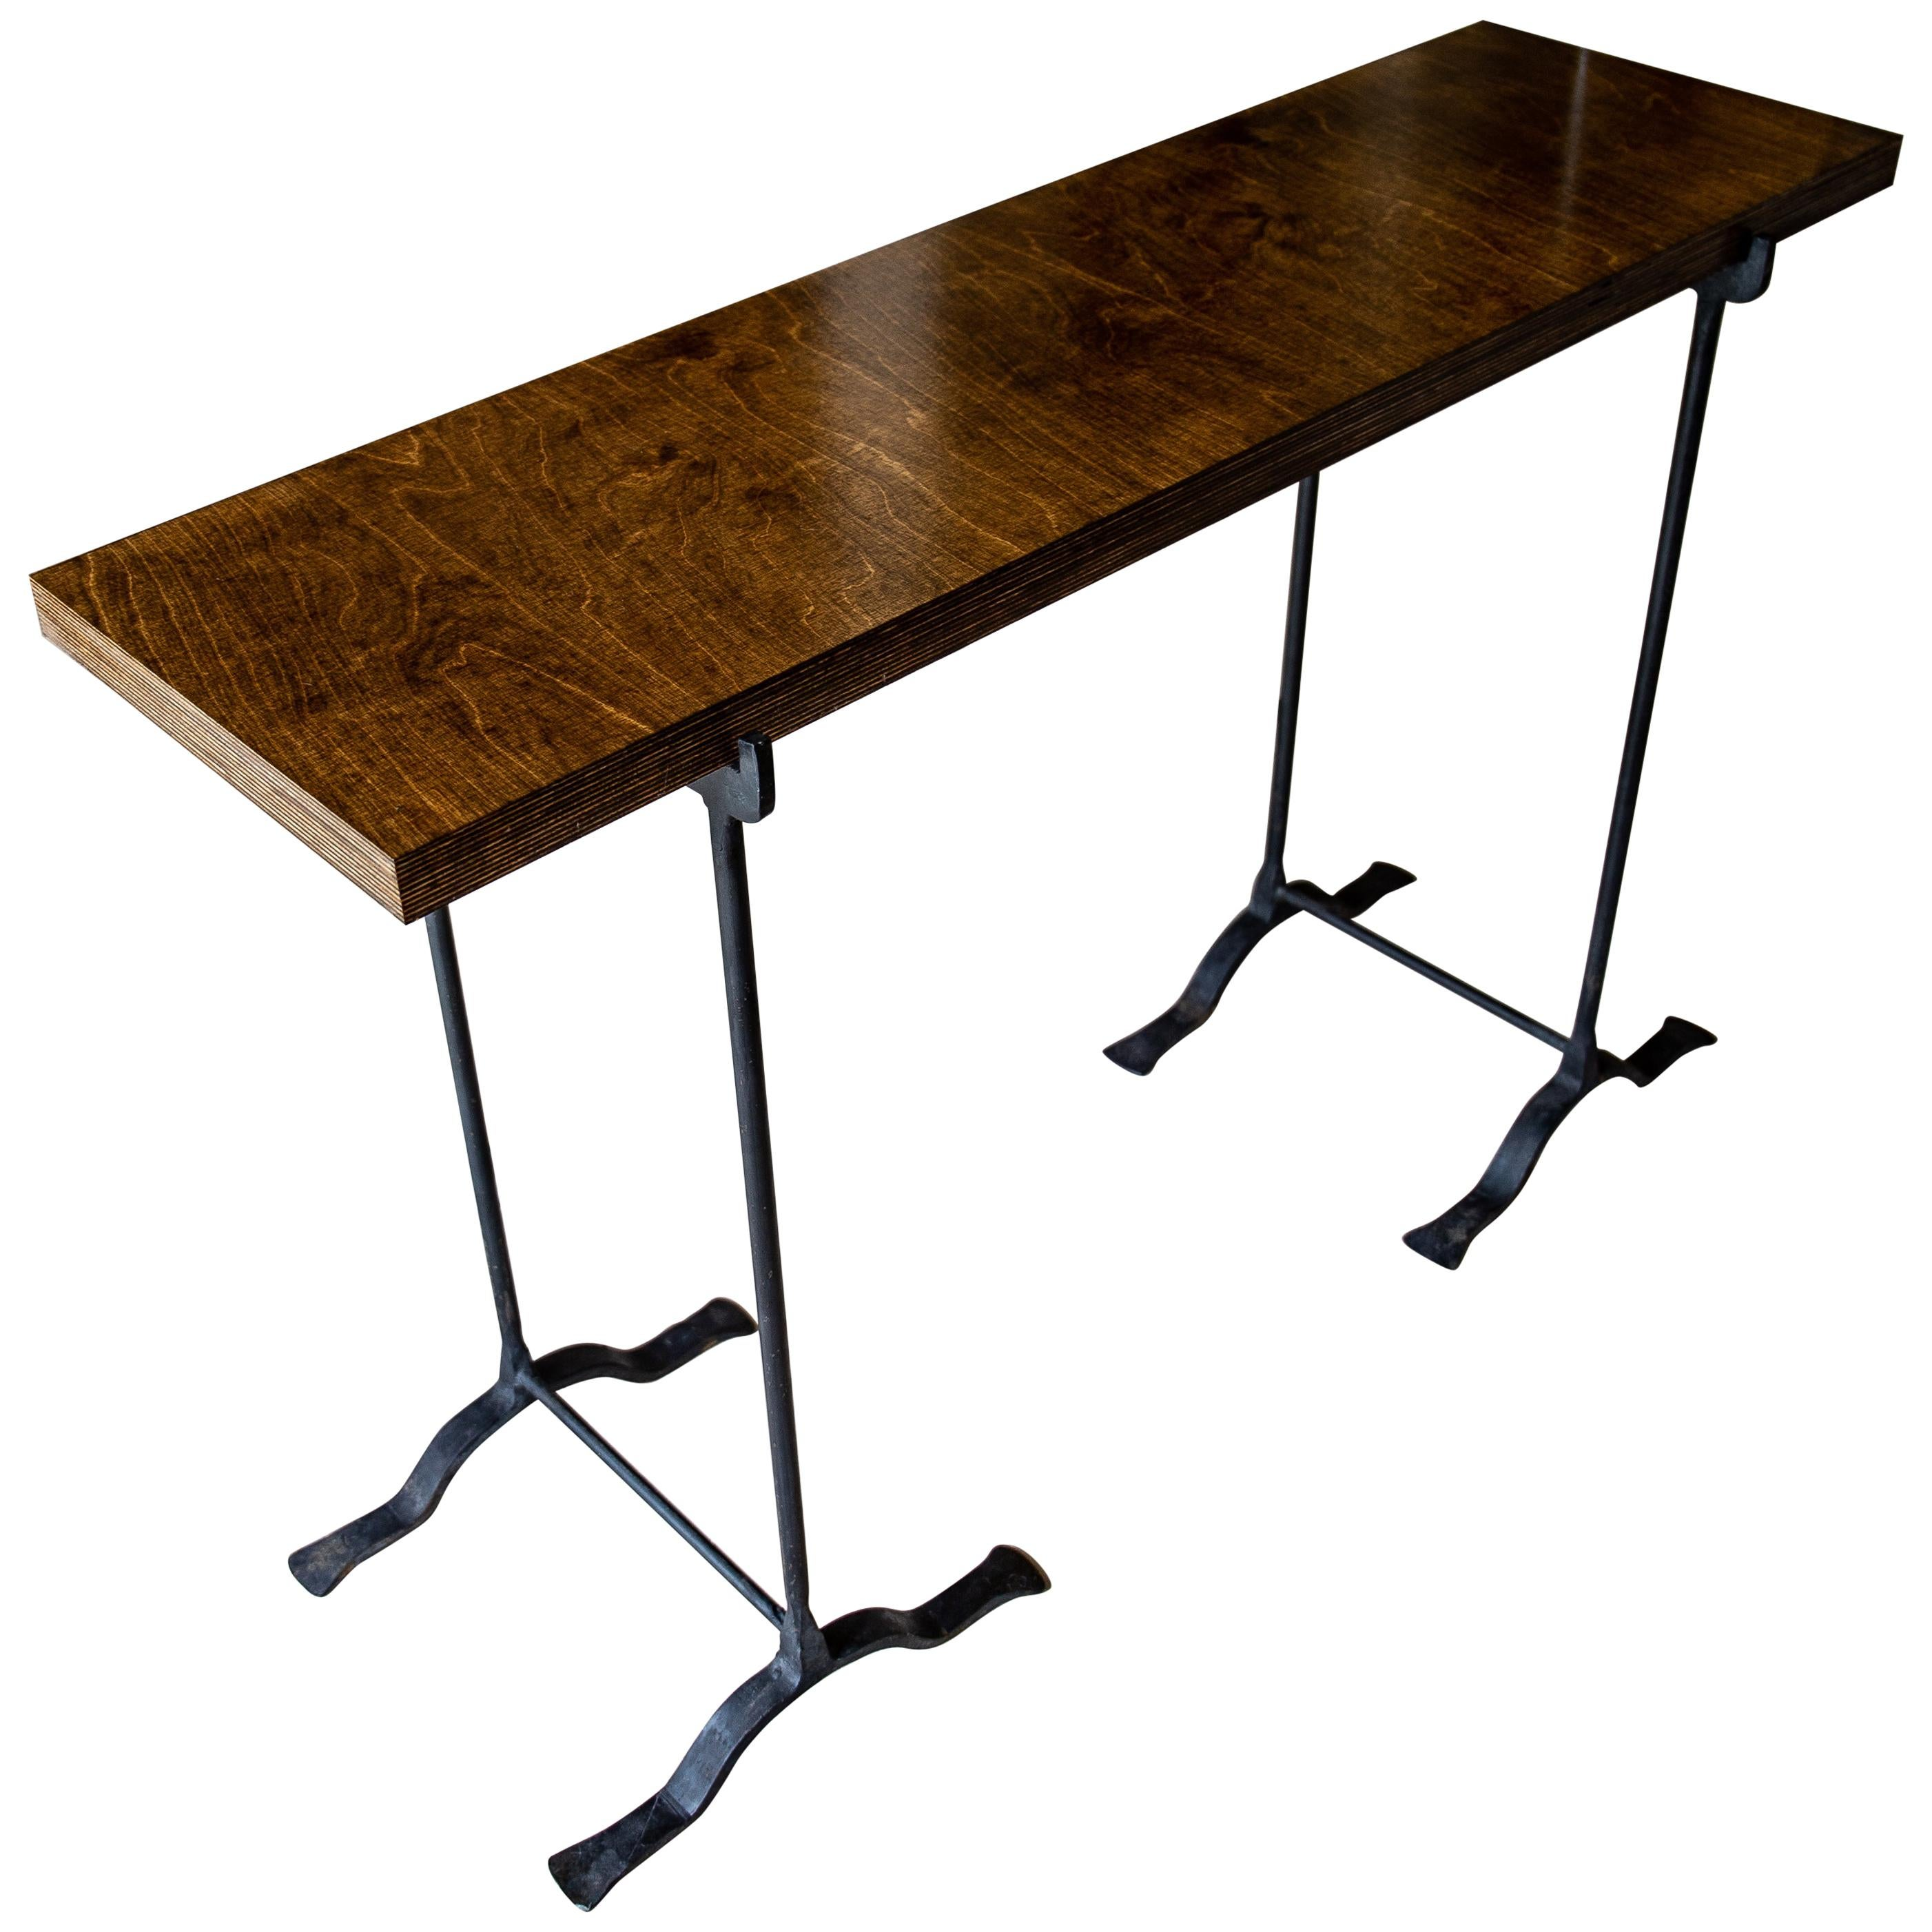 Console Table Design by Toad Gallery London - hand crafted and scalable